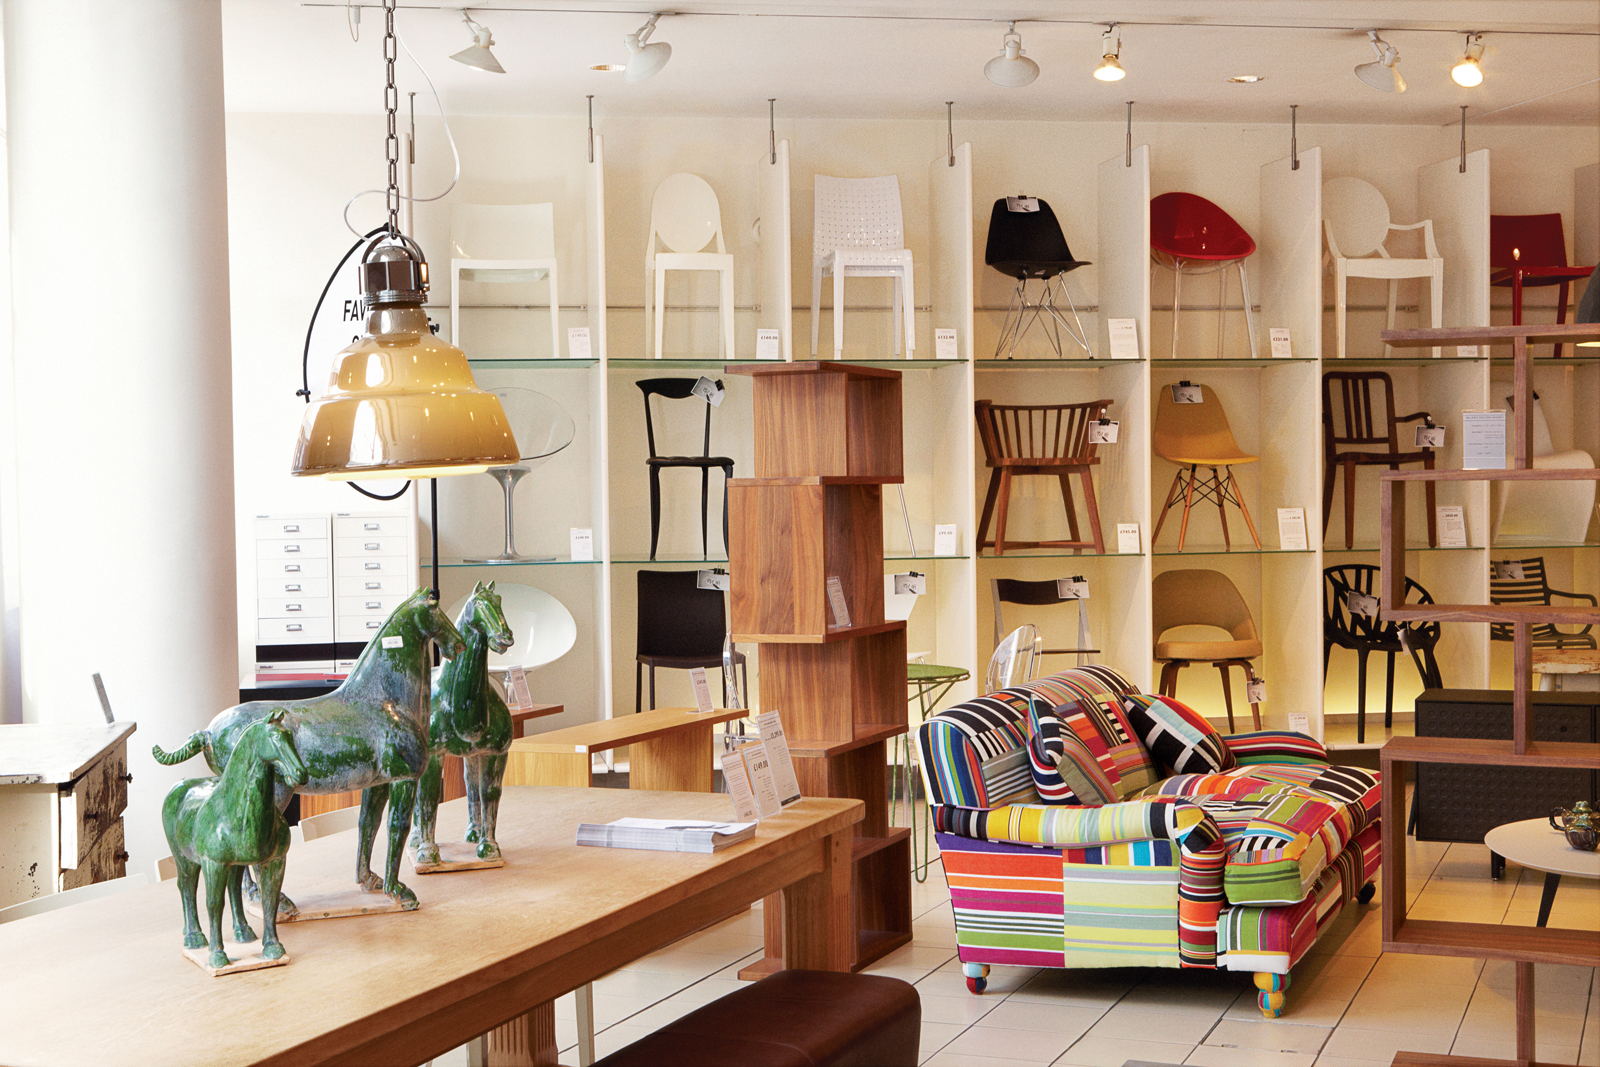 The Conran Shop has sites in countries around the world, but the original flagship shop is located in the historic Michelin building in London's Chelsea district.